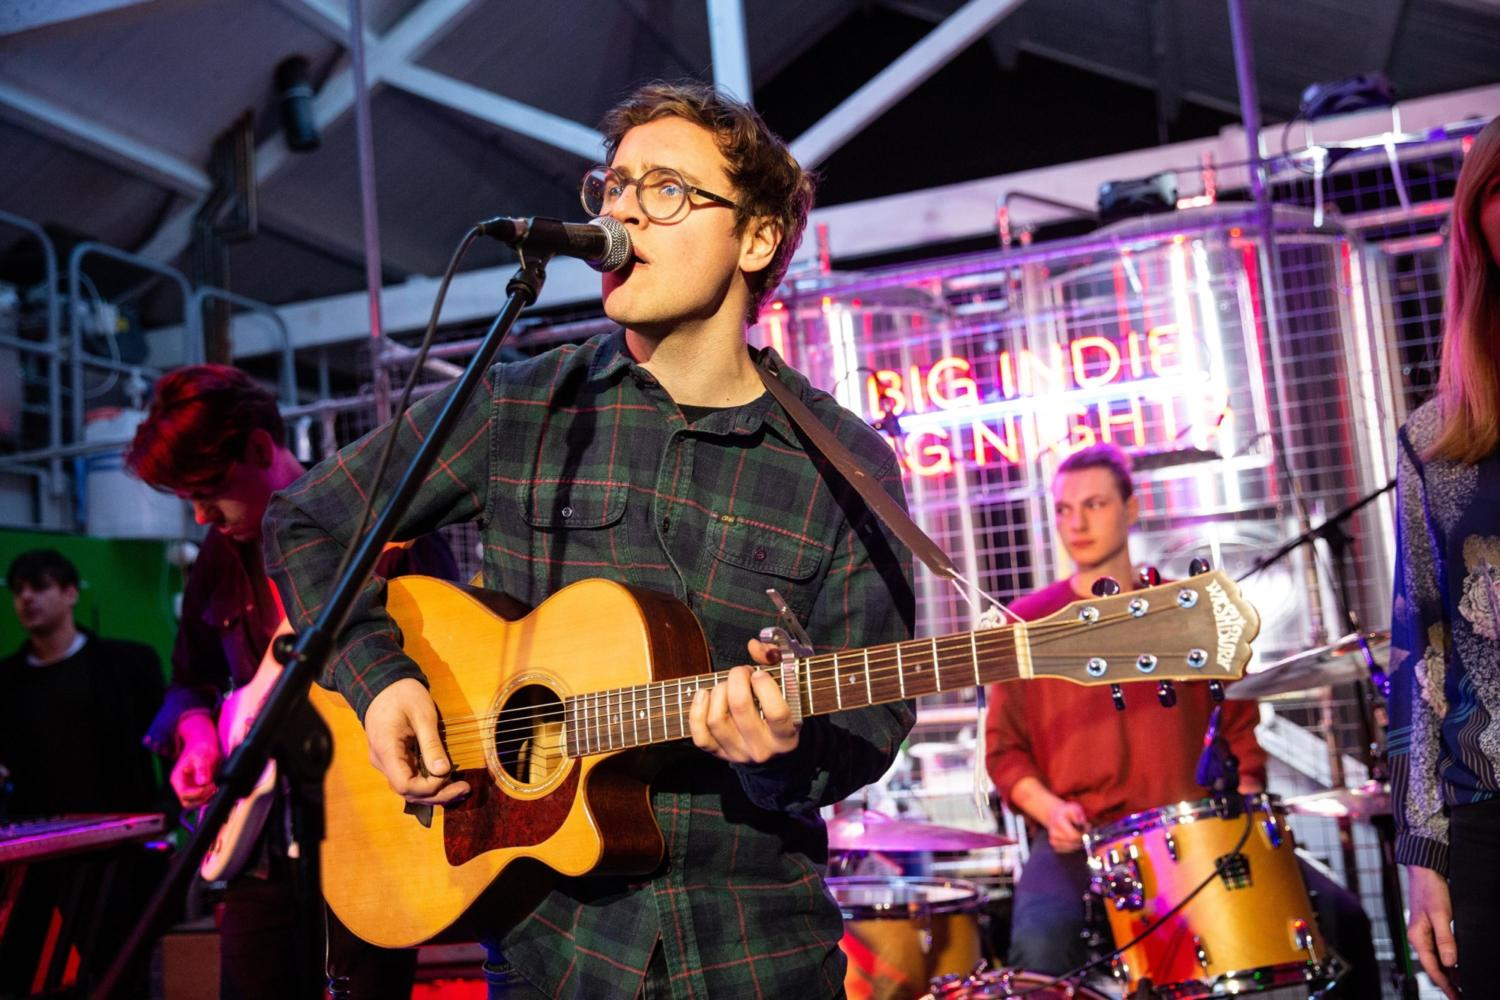 Watch Alex Bayly perform 'I'll Never Leave You' at Big Indie Big Nights